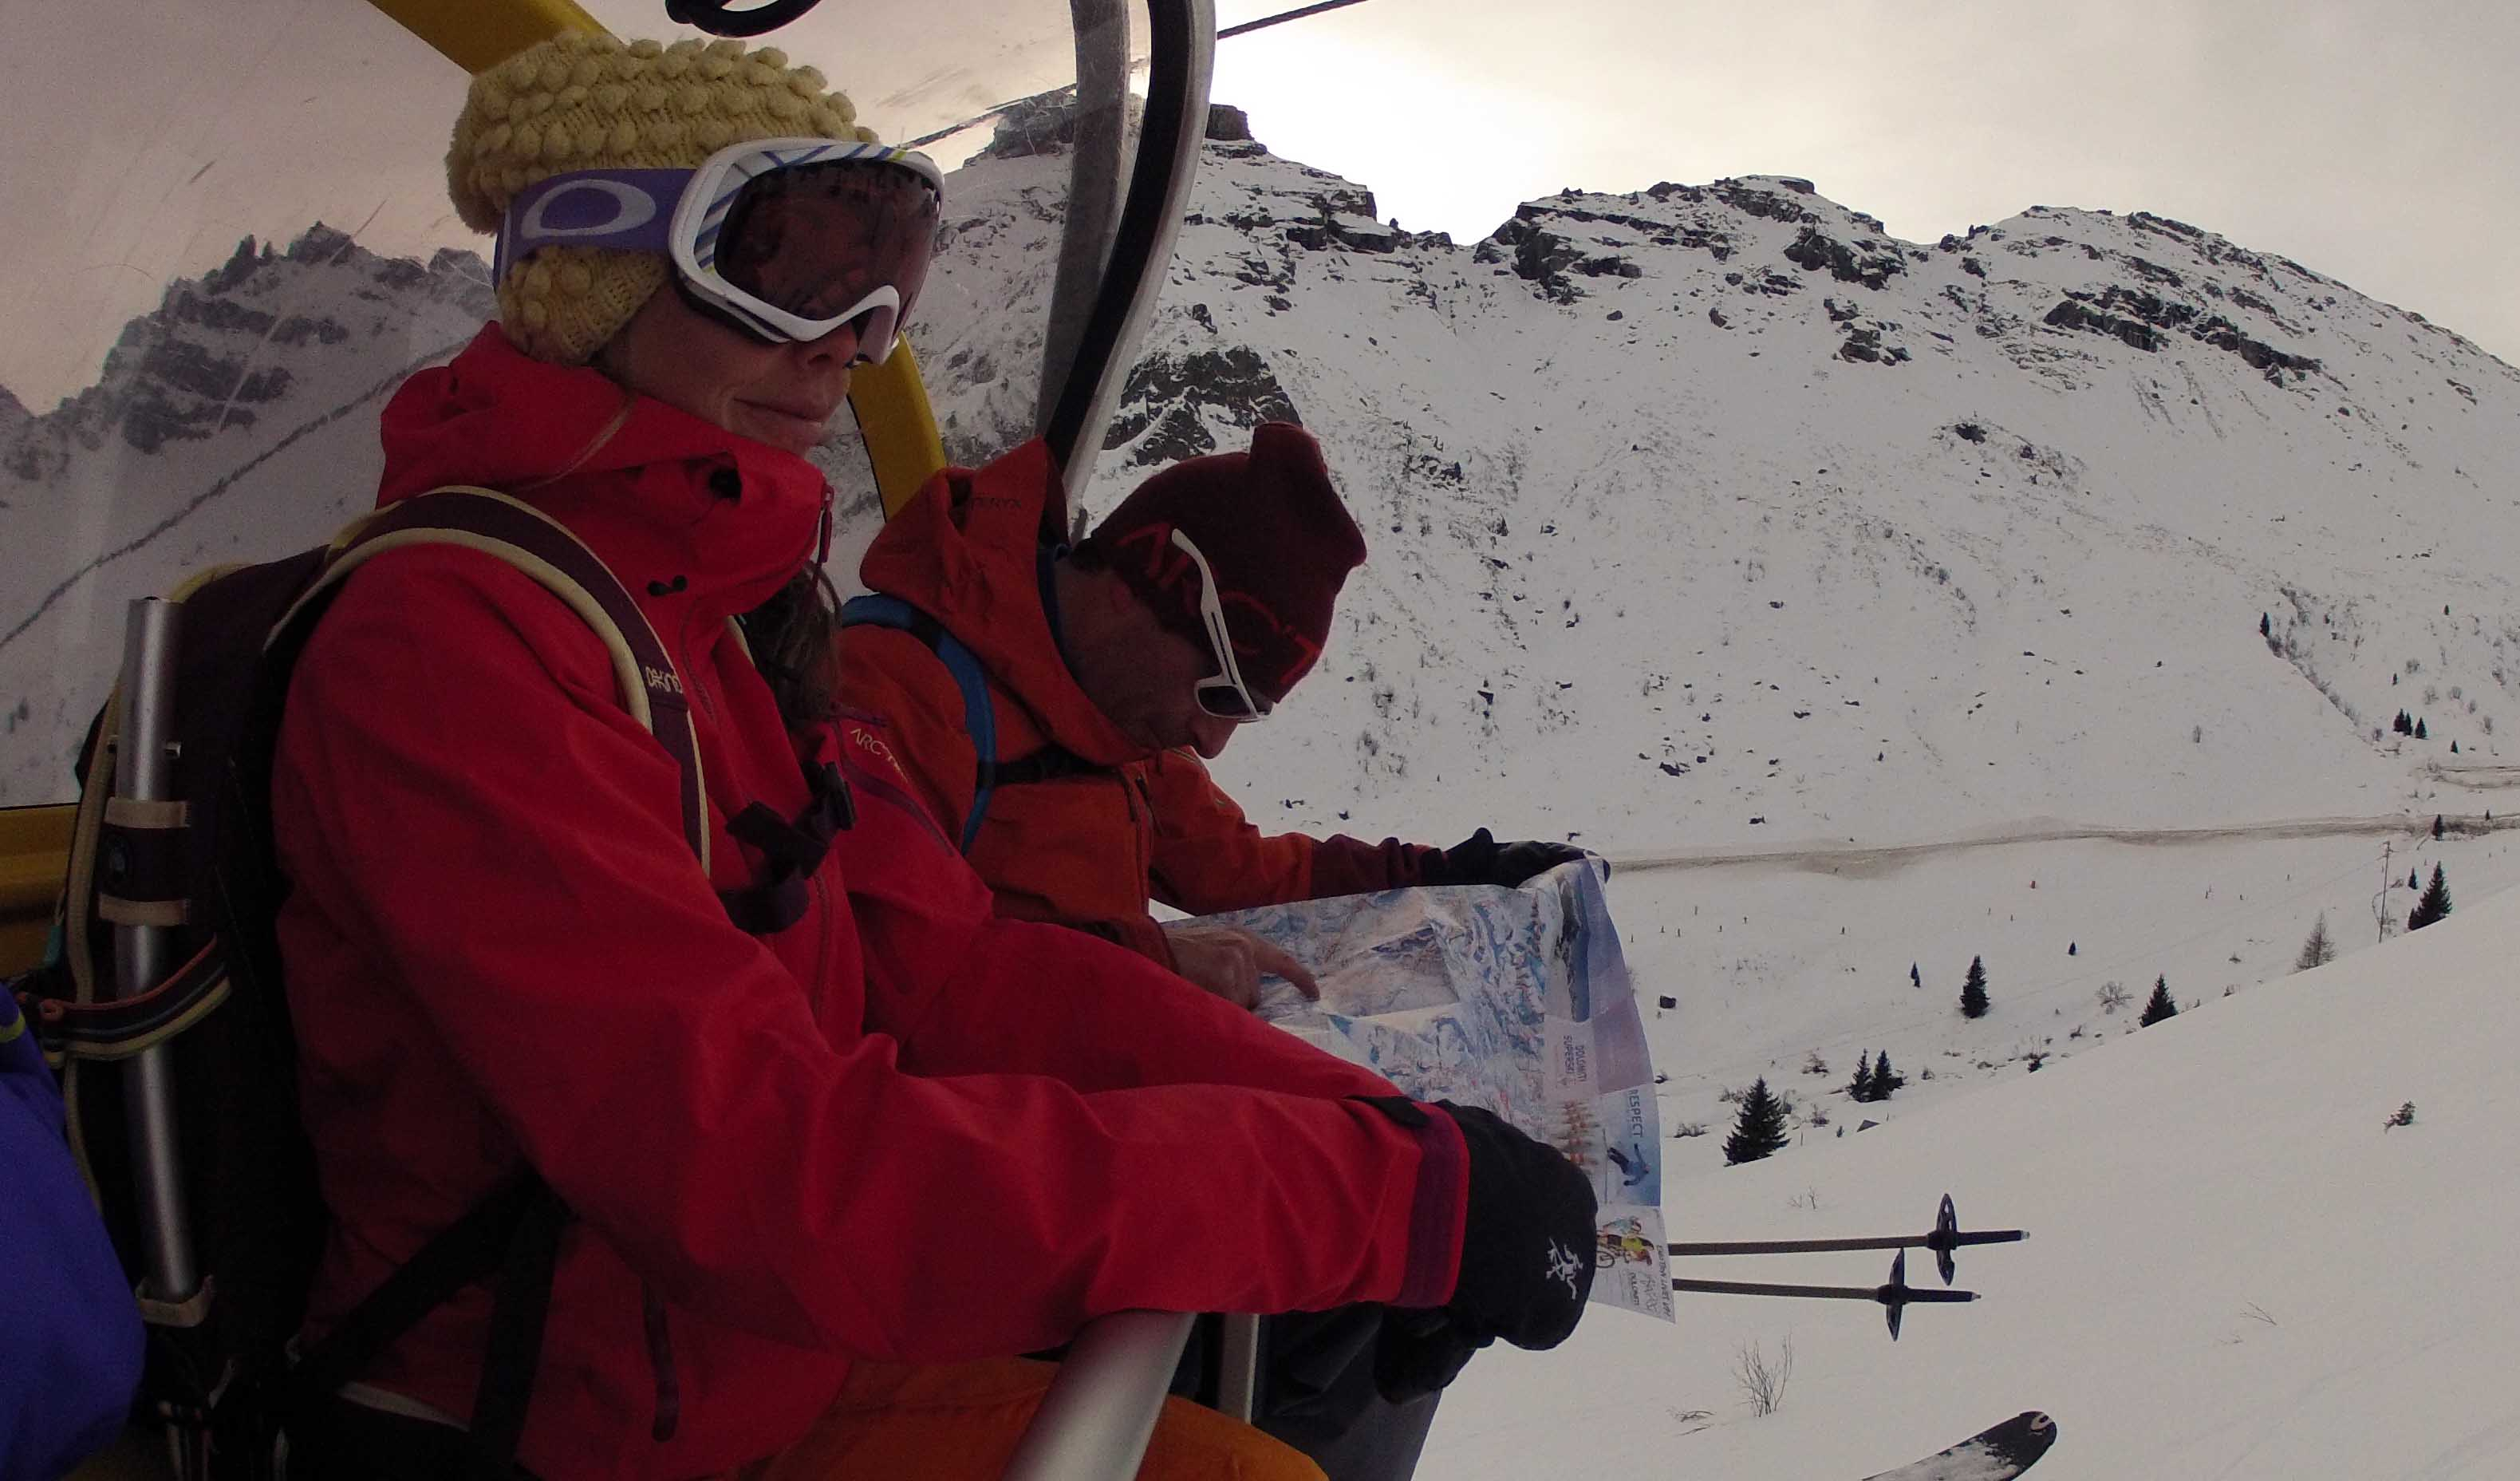 The Chairlift Tour di Dolomiti demands a bit of mapping. PHOTO: JOHN CLARY DAVIES